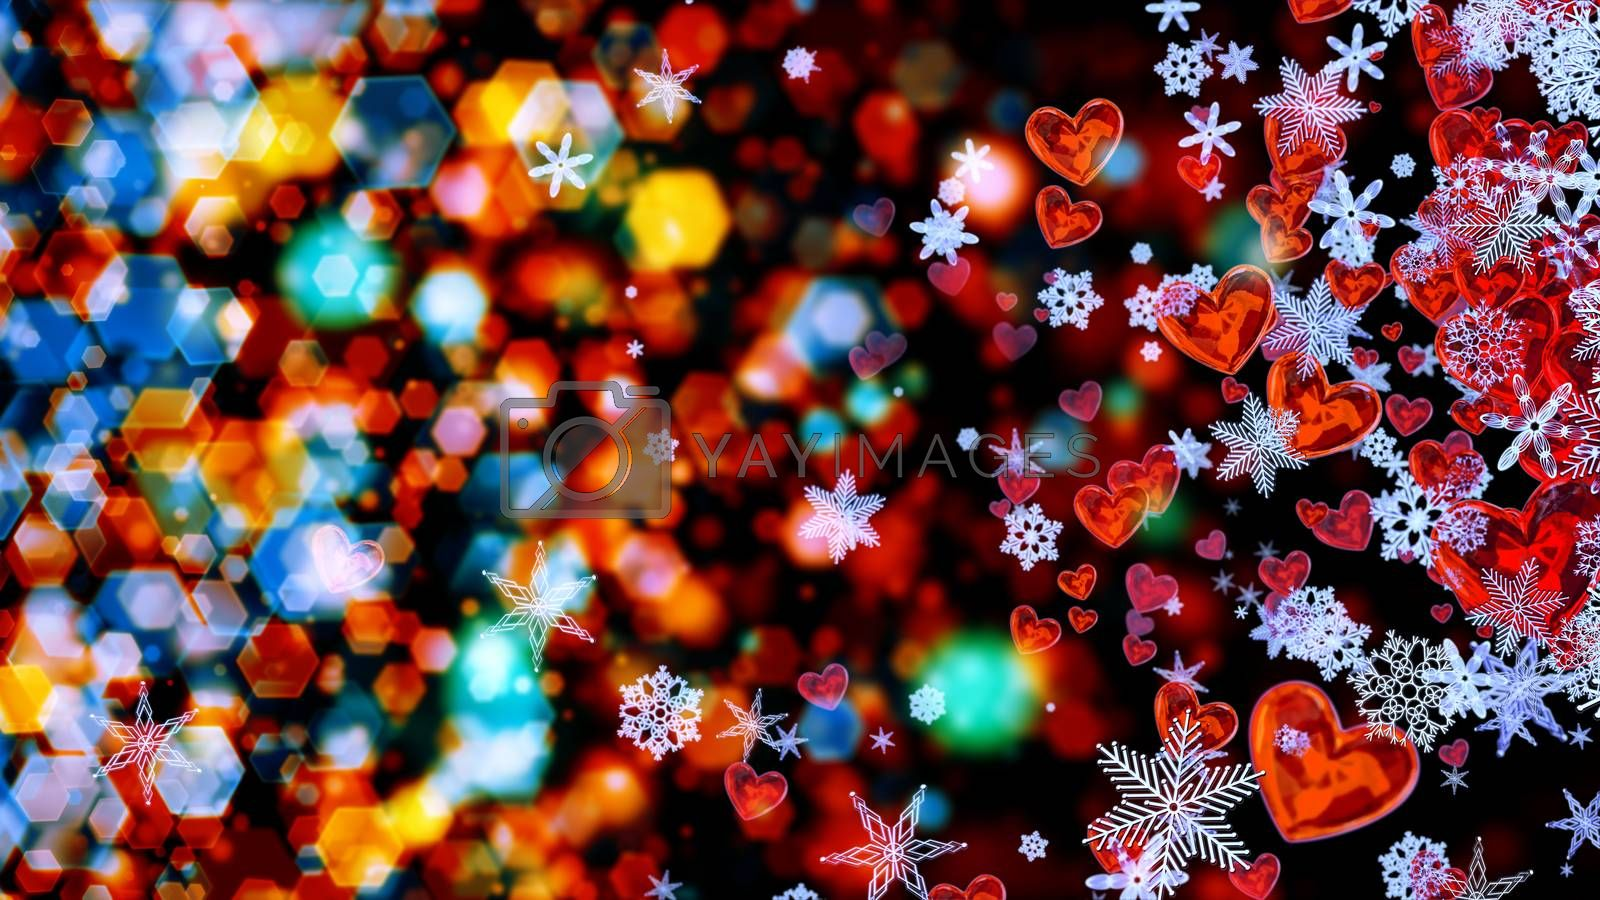 Set of hearts and snowflakes with a colored bokeh backdrop as a symbol of romantic love for the congratulations on Valentine's Day in february and winter weddings. Abstract horizontal background.